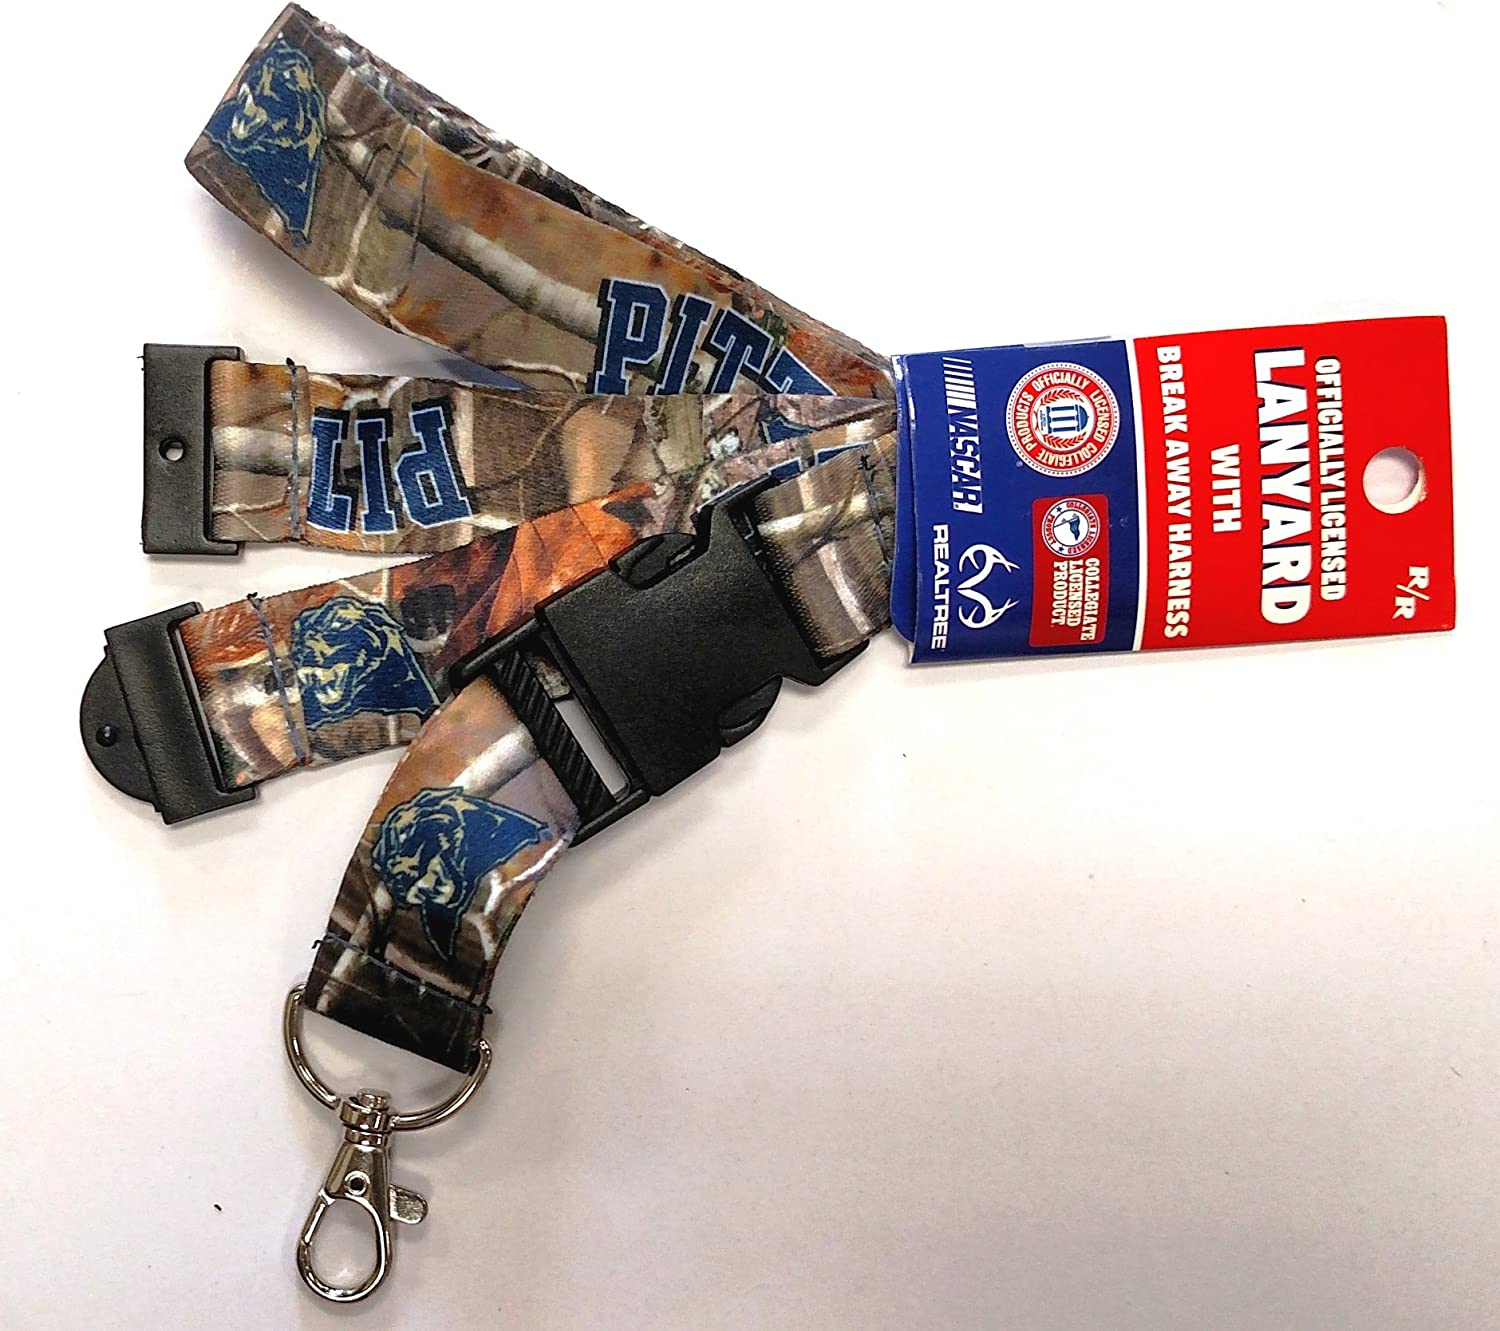 RR Pittsburgh Panthers Pitt CAMO Deluxe 2-Sided Lanyard Breakaway Clip w//J-Hook Keychain University of Mississippi